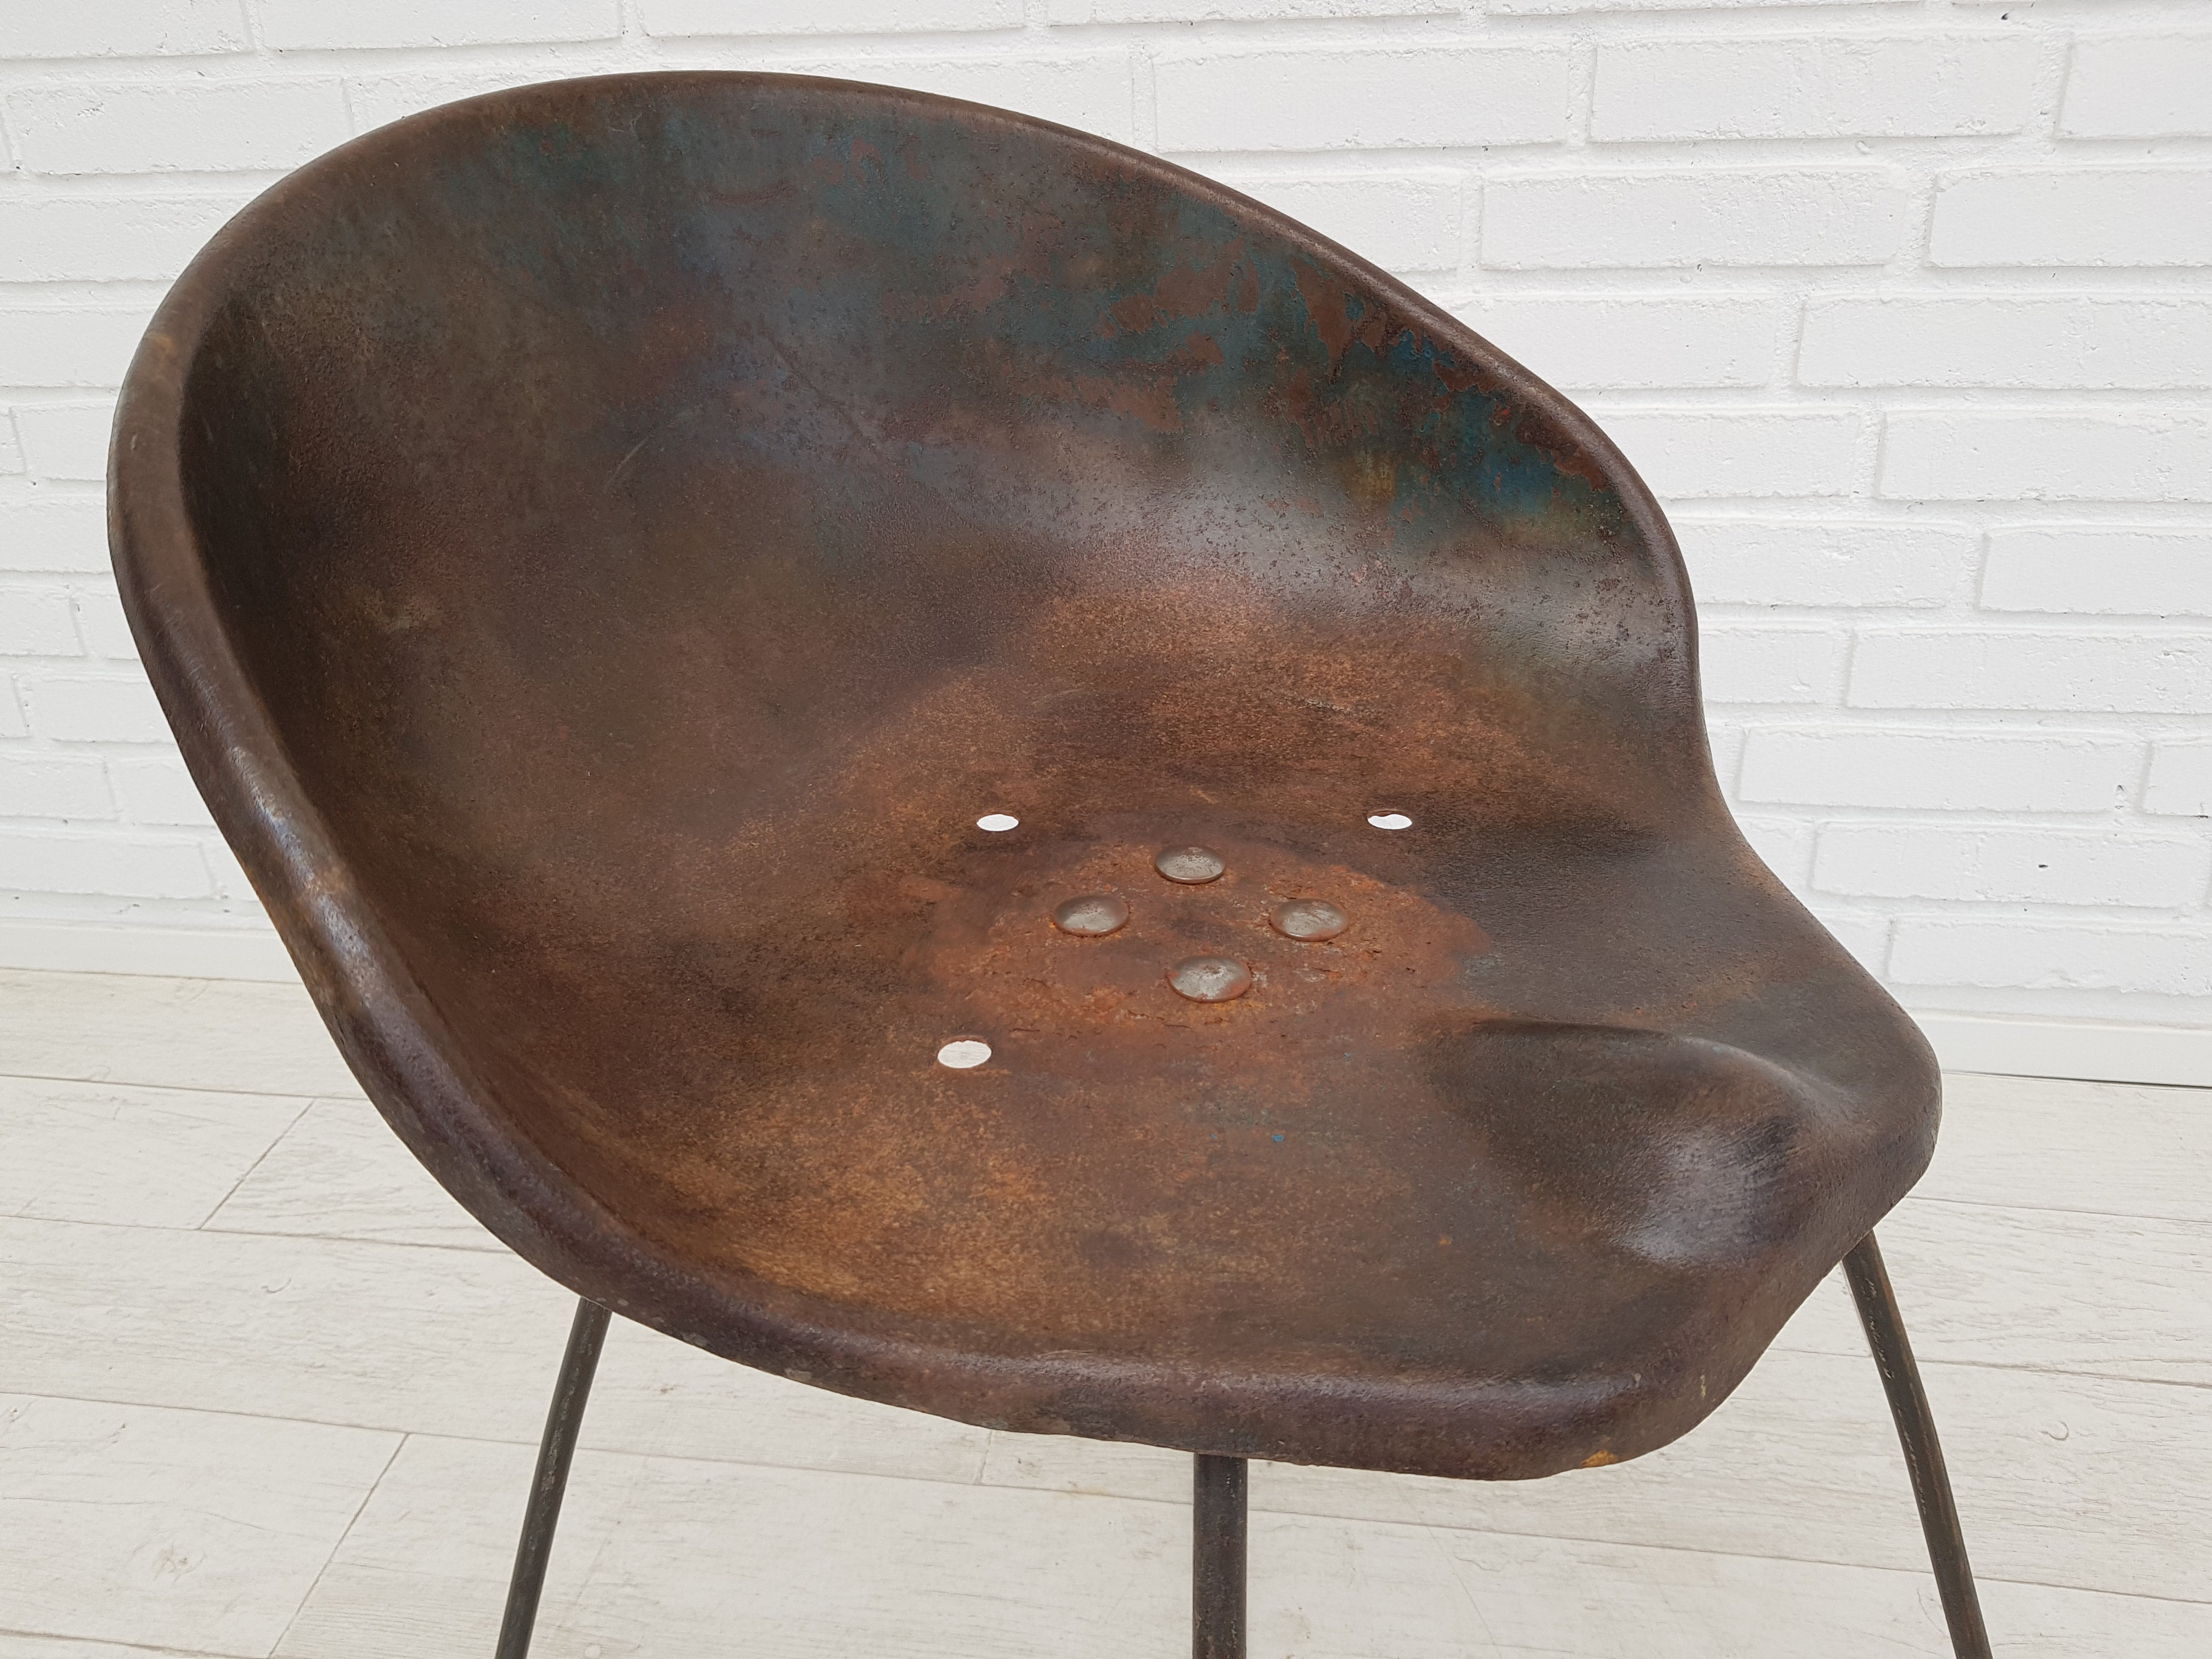 Armchair, old tractor seat, metal, 50s